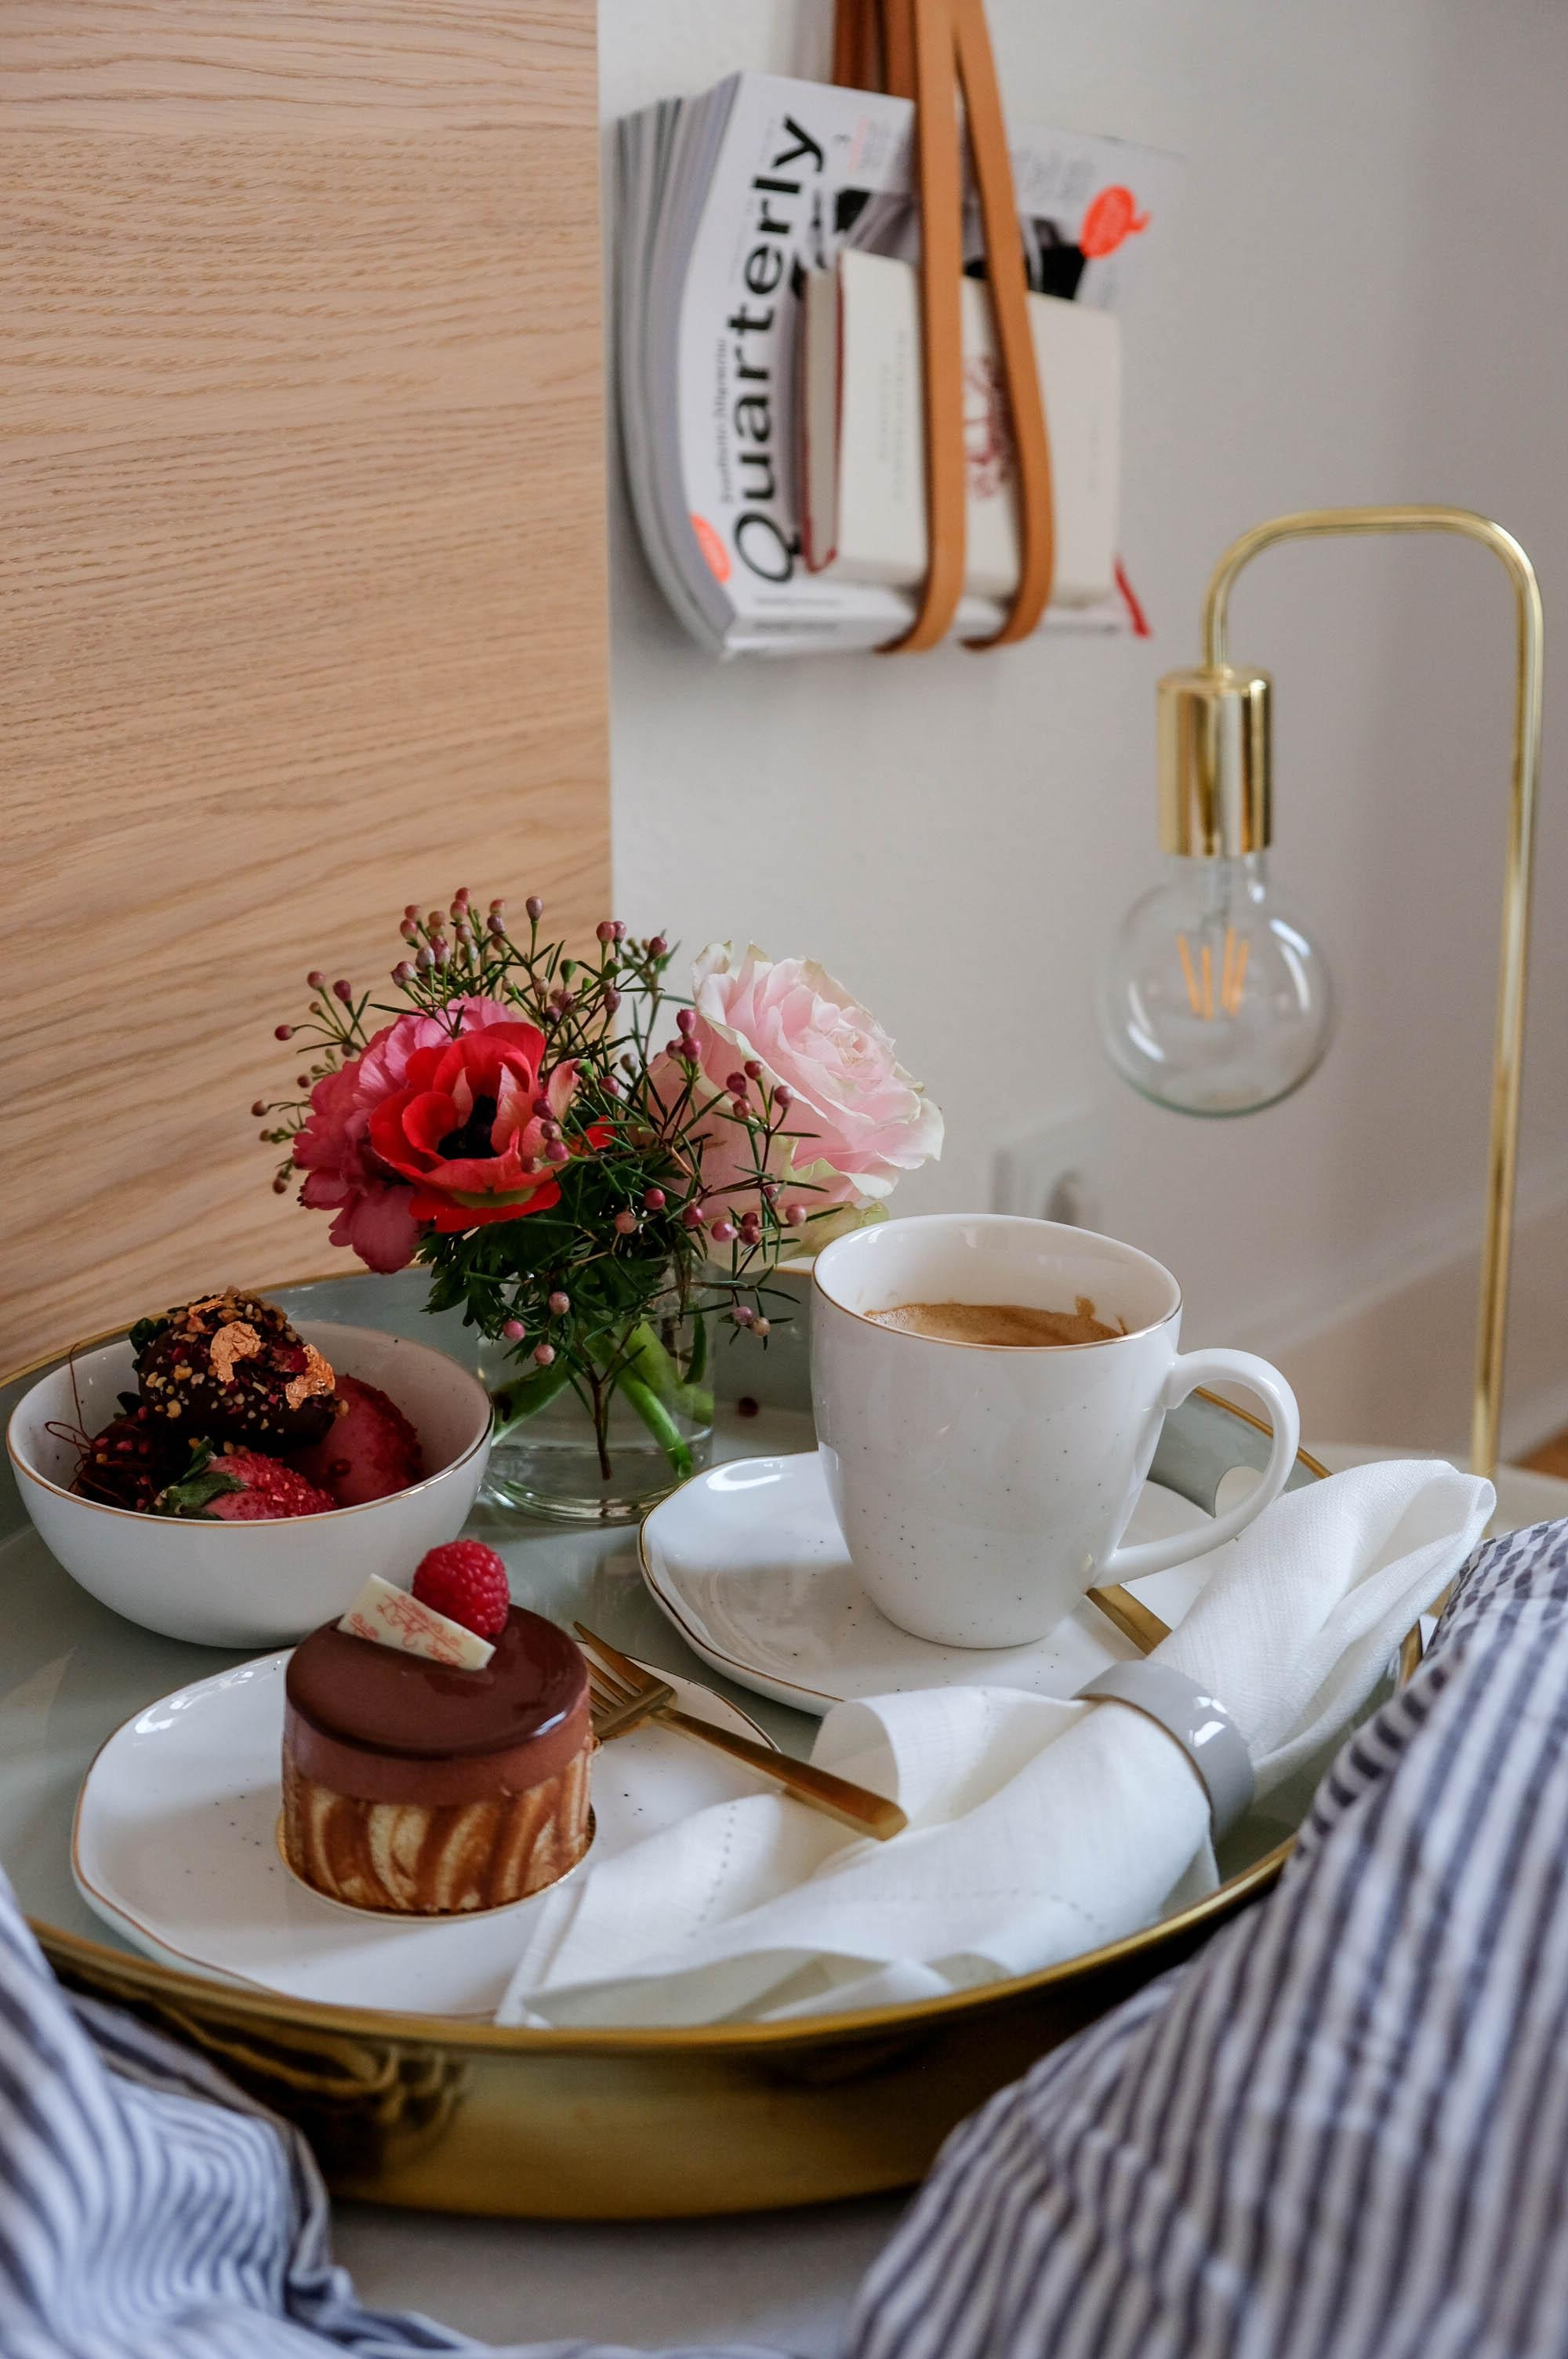 Valentinstag inspo breakfast in bed  valentinstag interior love  b5a2a40a fa33 4fa2 8895 563c560060f0